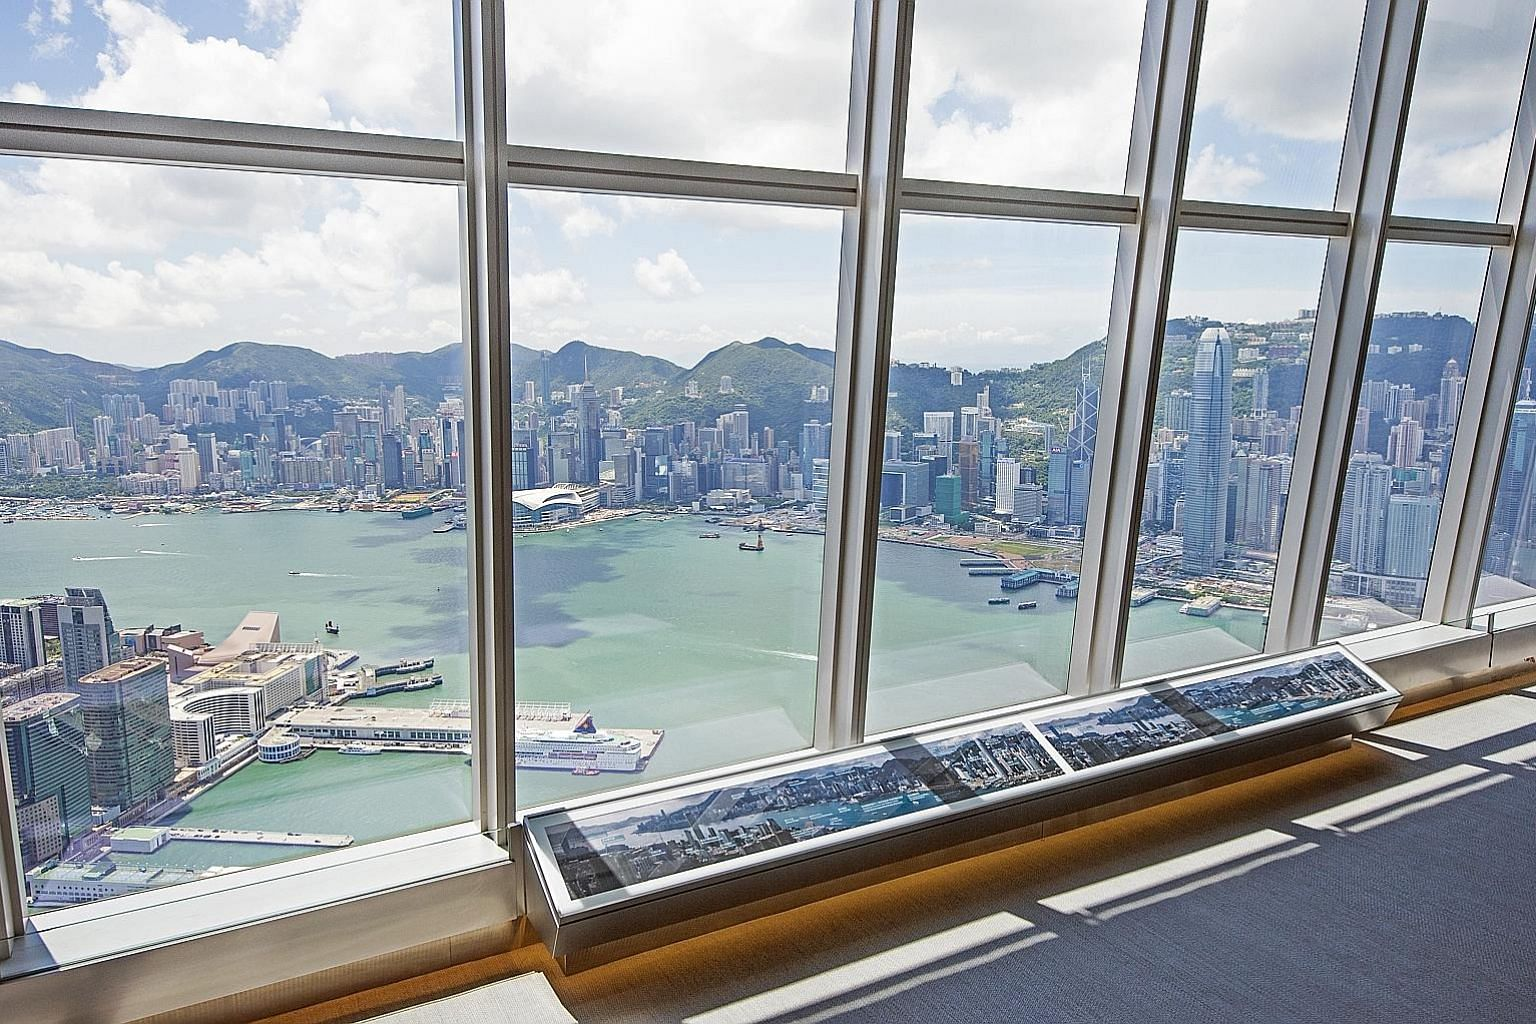 The sky100 Hong Kong Observation Deck, on the 100th floor of Hong Kong's tallest building, is celebrating its seventh anniversary. Go white-water rafting in the town of Futaleufu in Chile on an 11-day Patagonia lakes expedition with luxury experienti